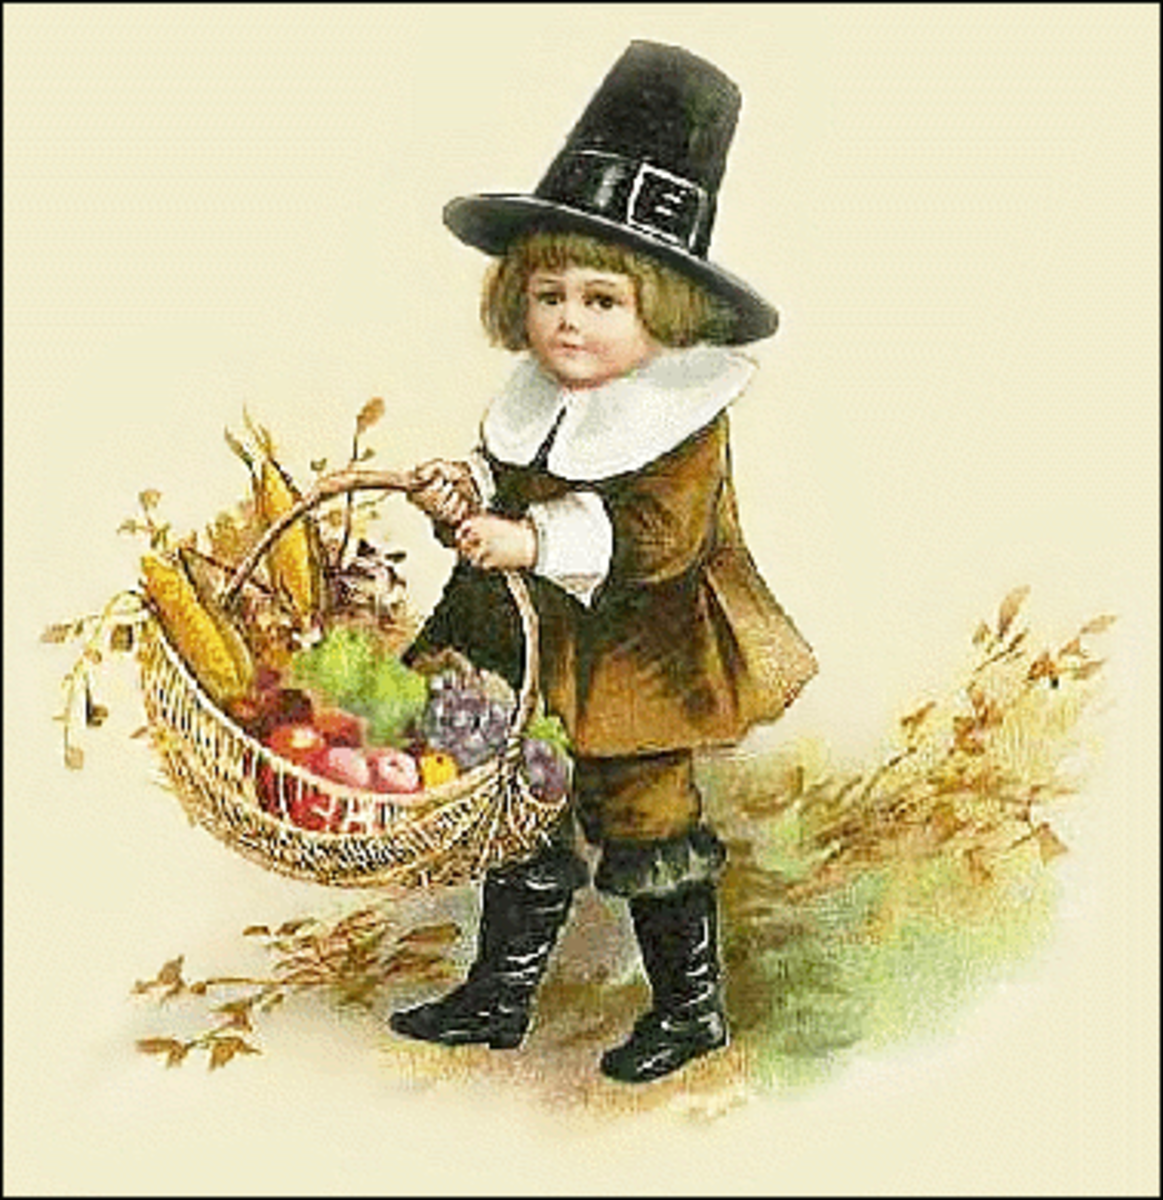 Pilgrim Child with Harvest Basket